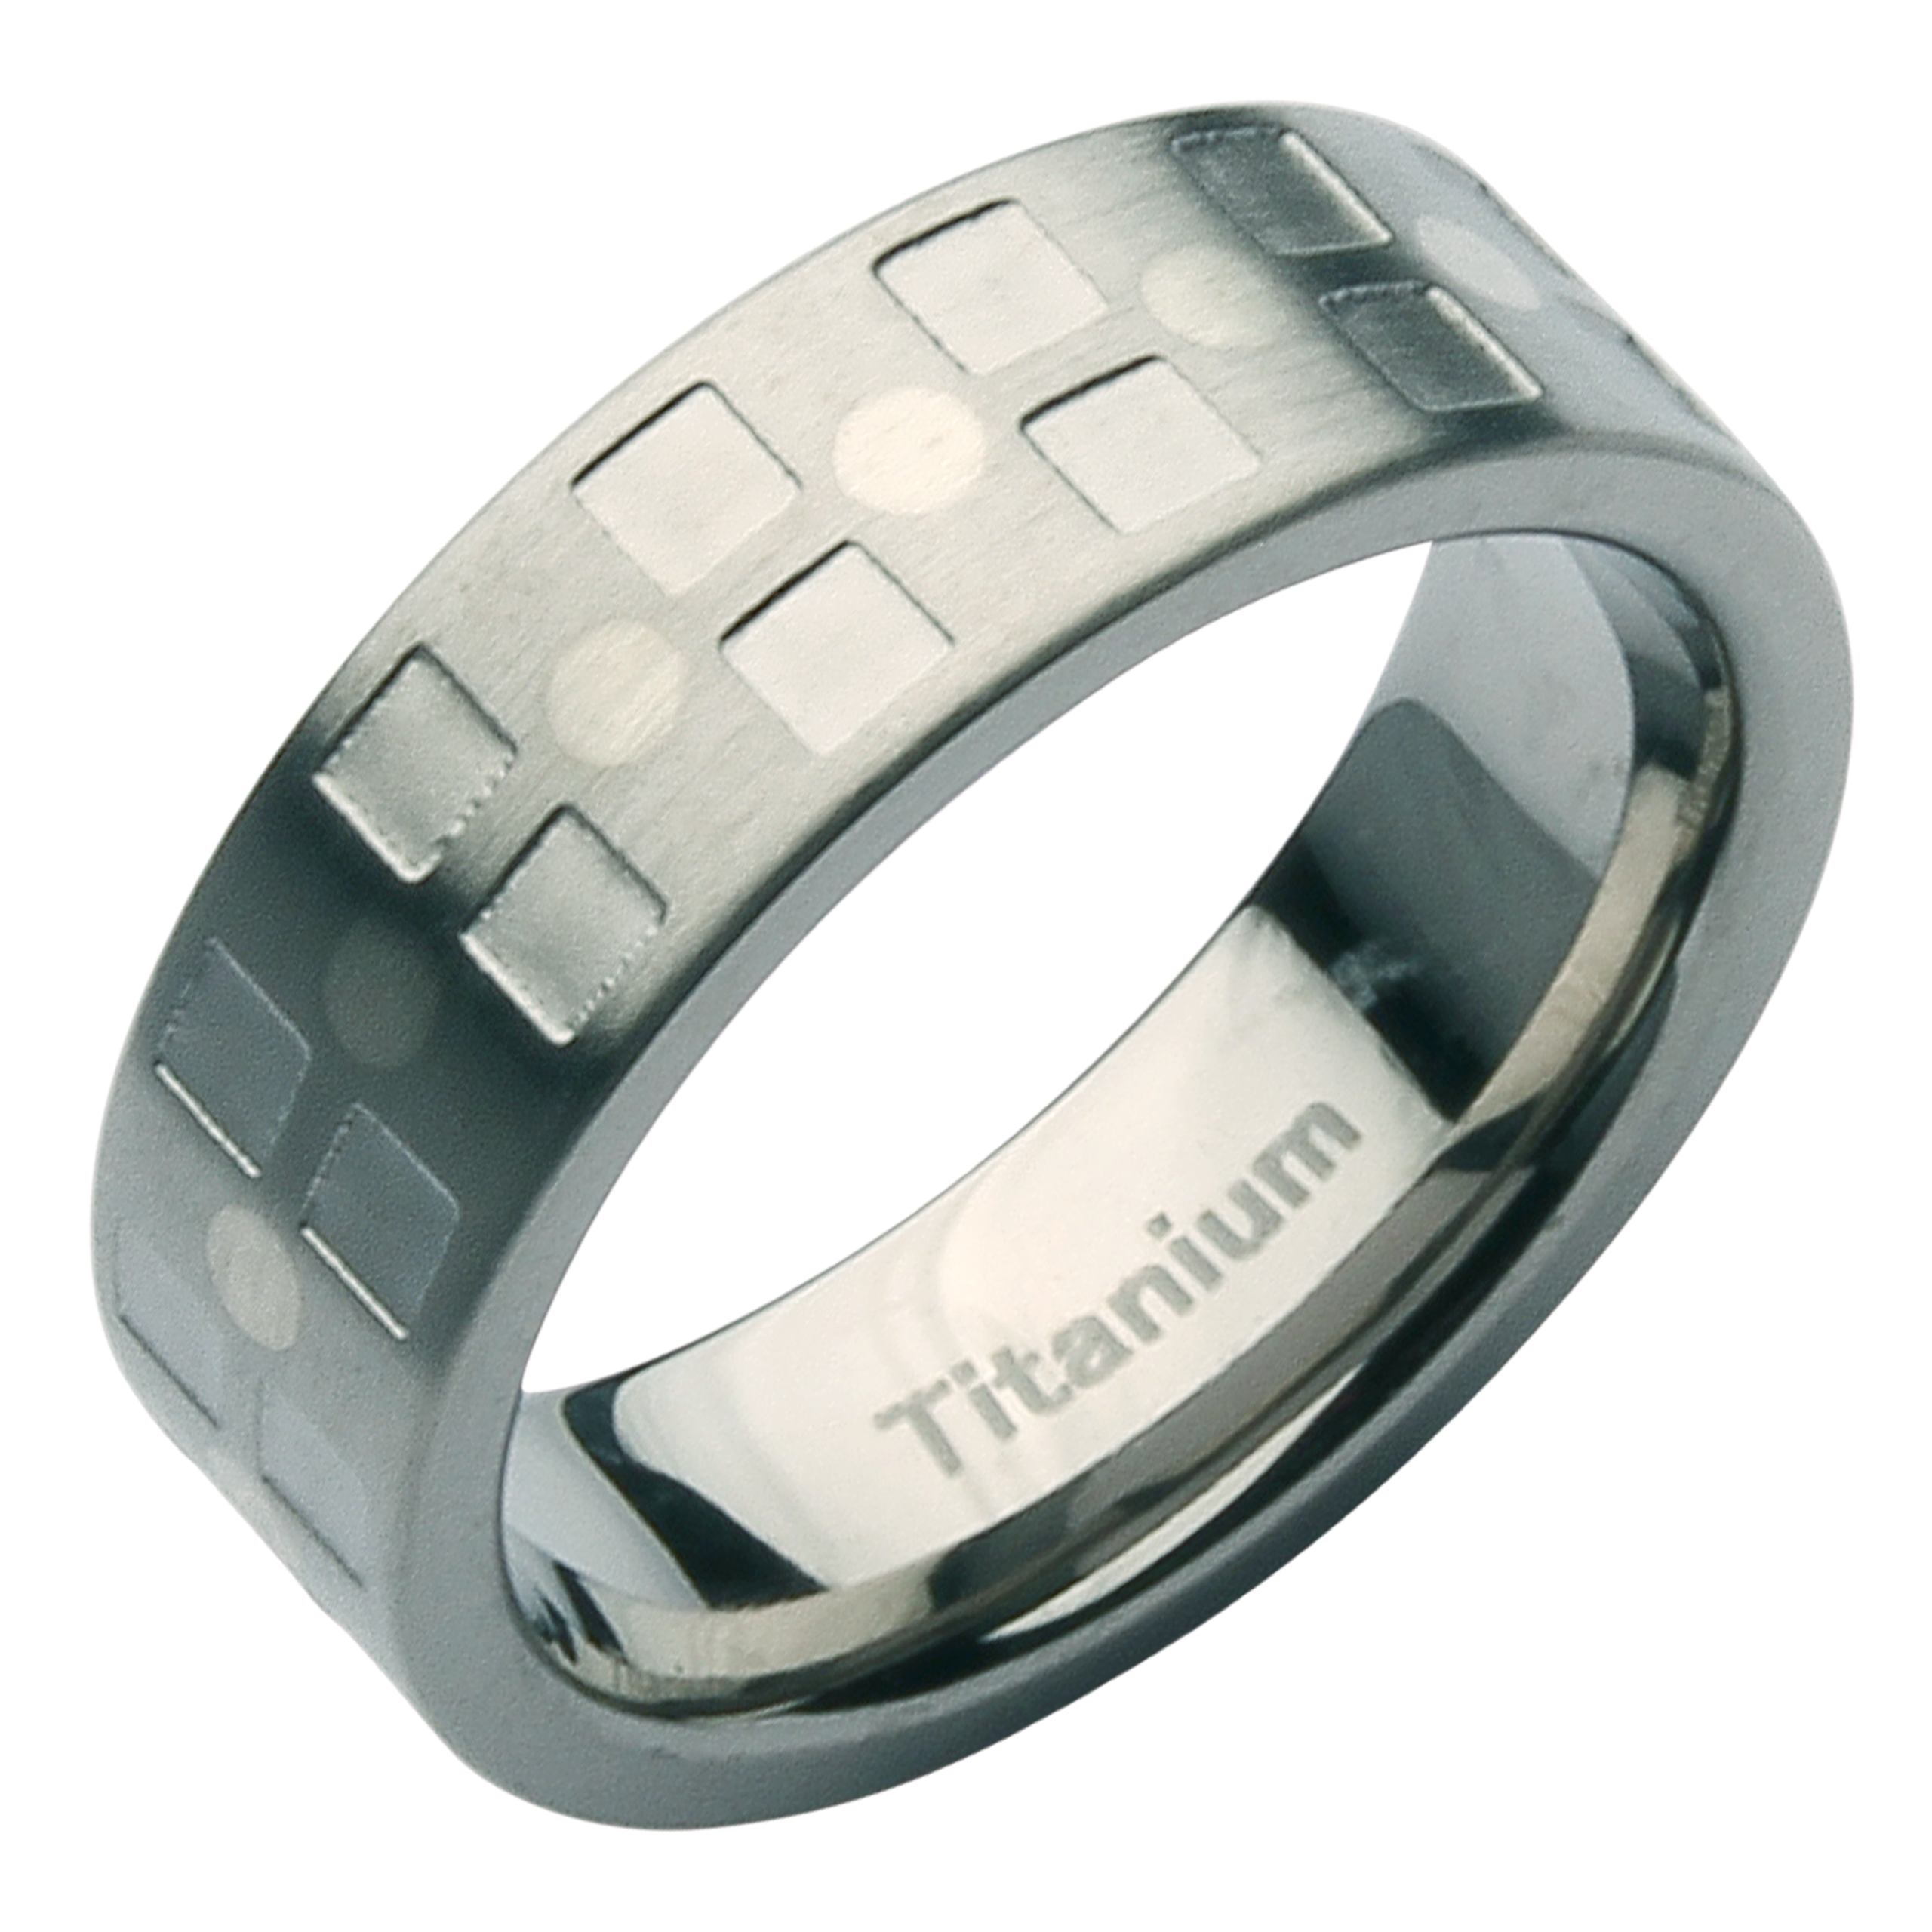 7mm Titanium Designed Patterned Wedding Ring Band